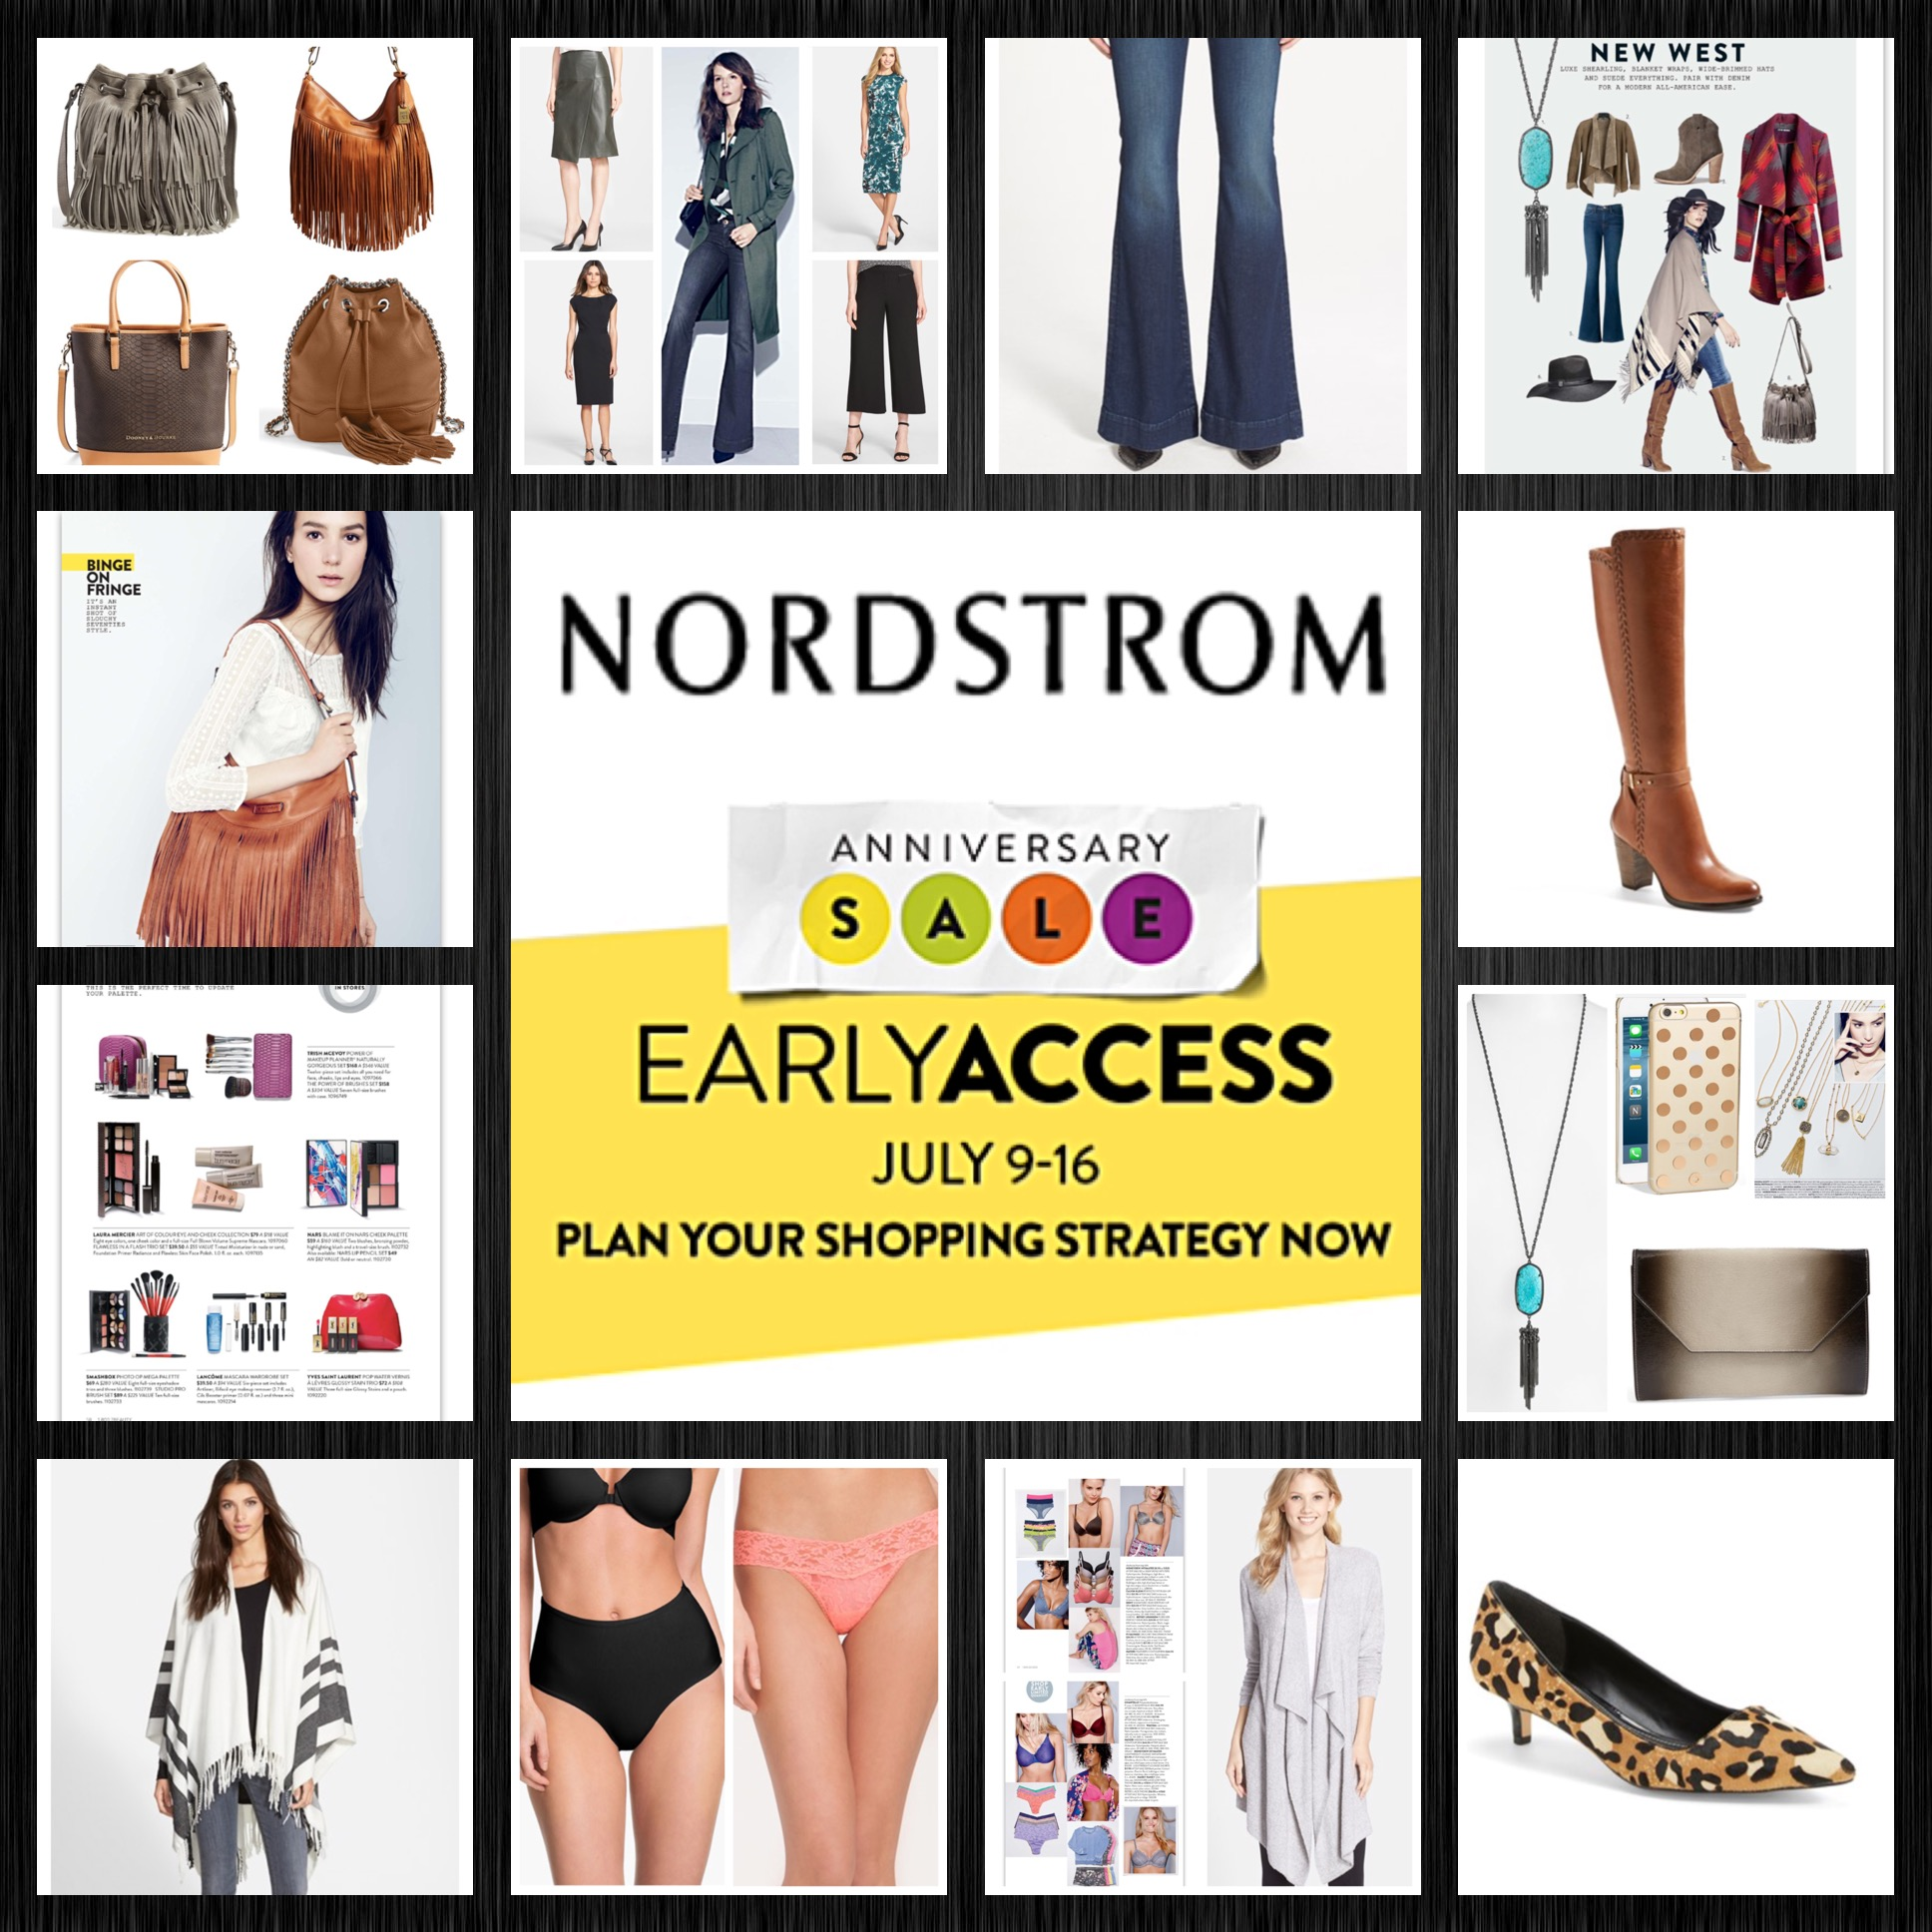 What I Shopped and Bought at the Nordstrom Anniversary Sale